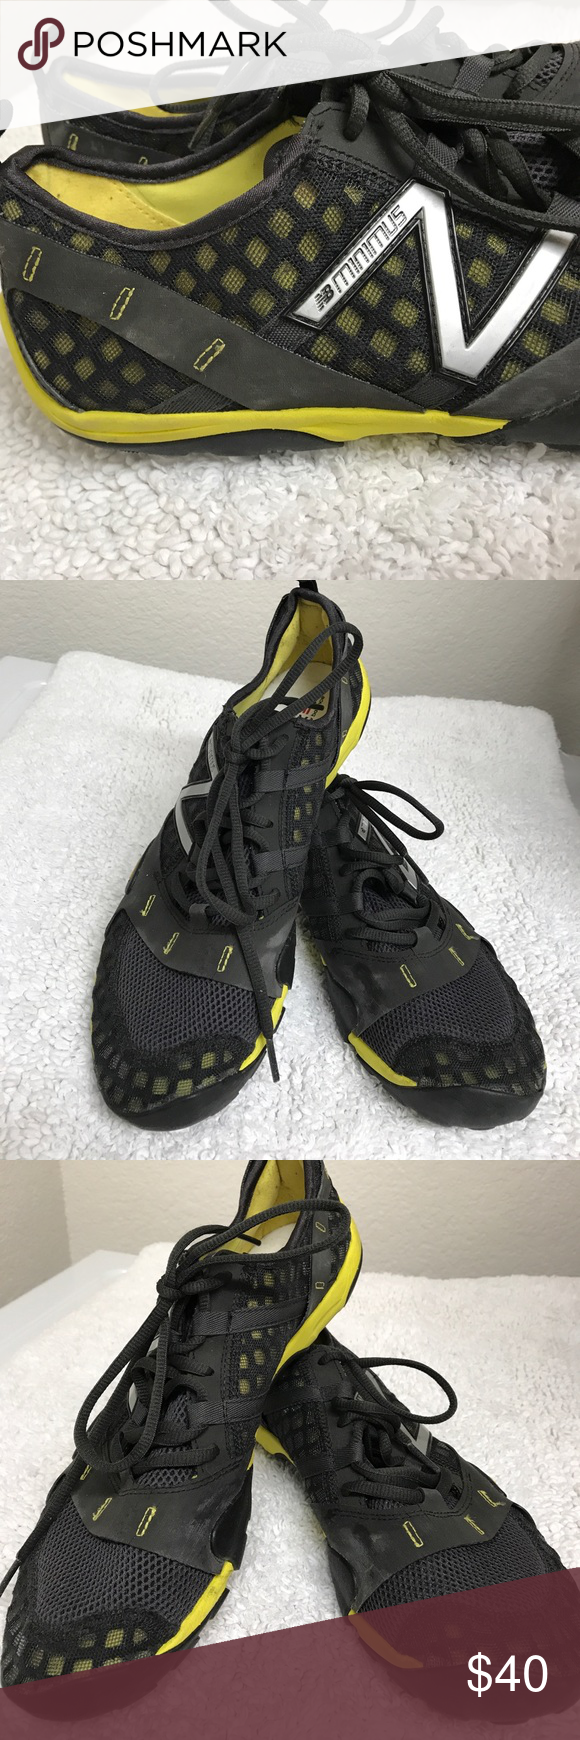 5942f0a3a9f New balance minimus men s shoes size 10.5 Great shoes that has some used  with minor dirt noted that can be possibly just wash.Has minor scratches on  the ...